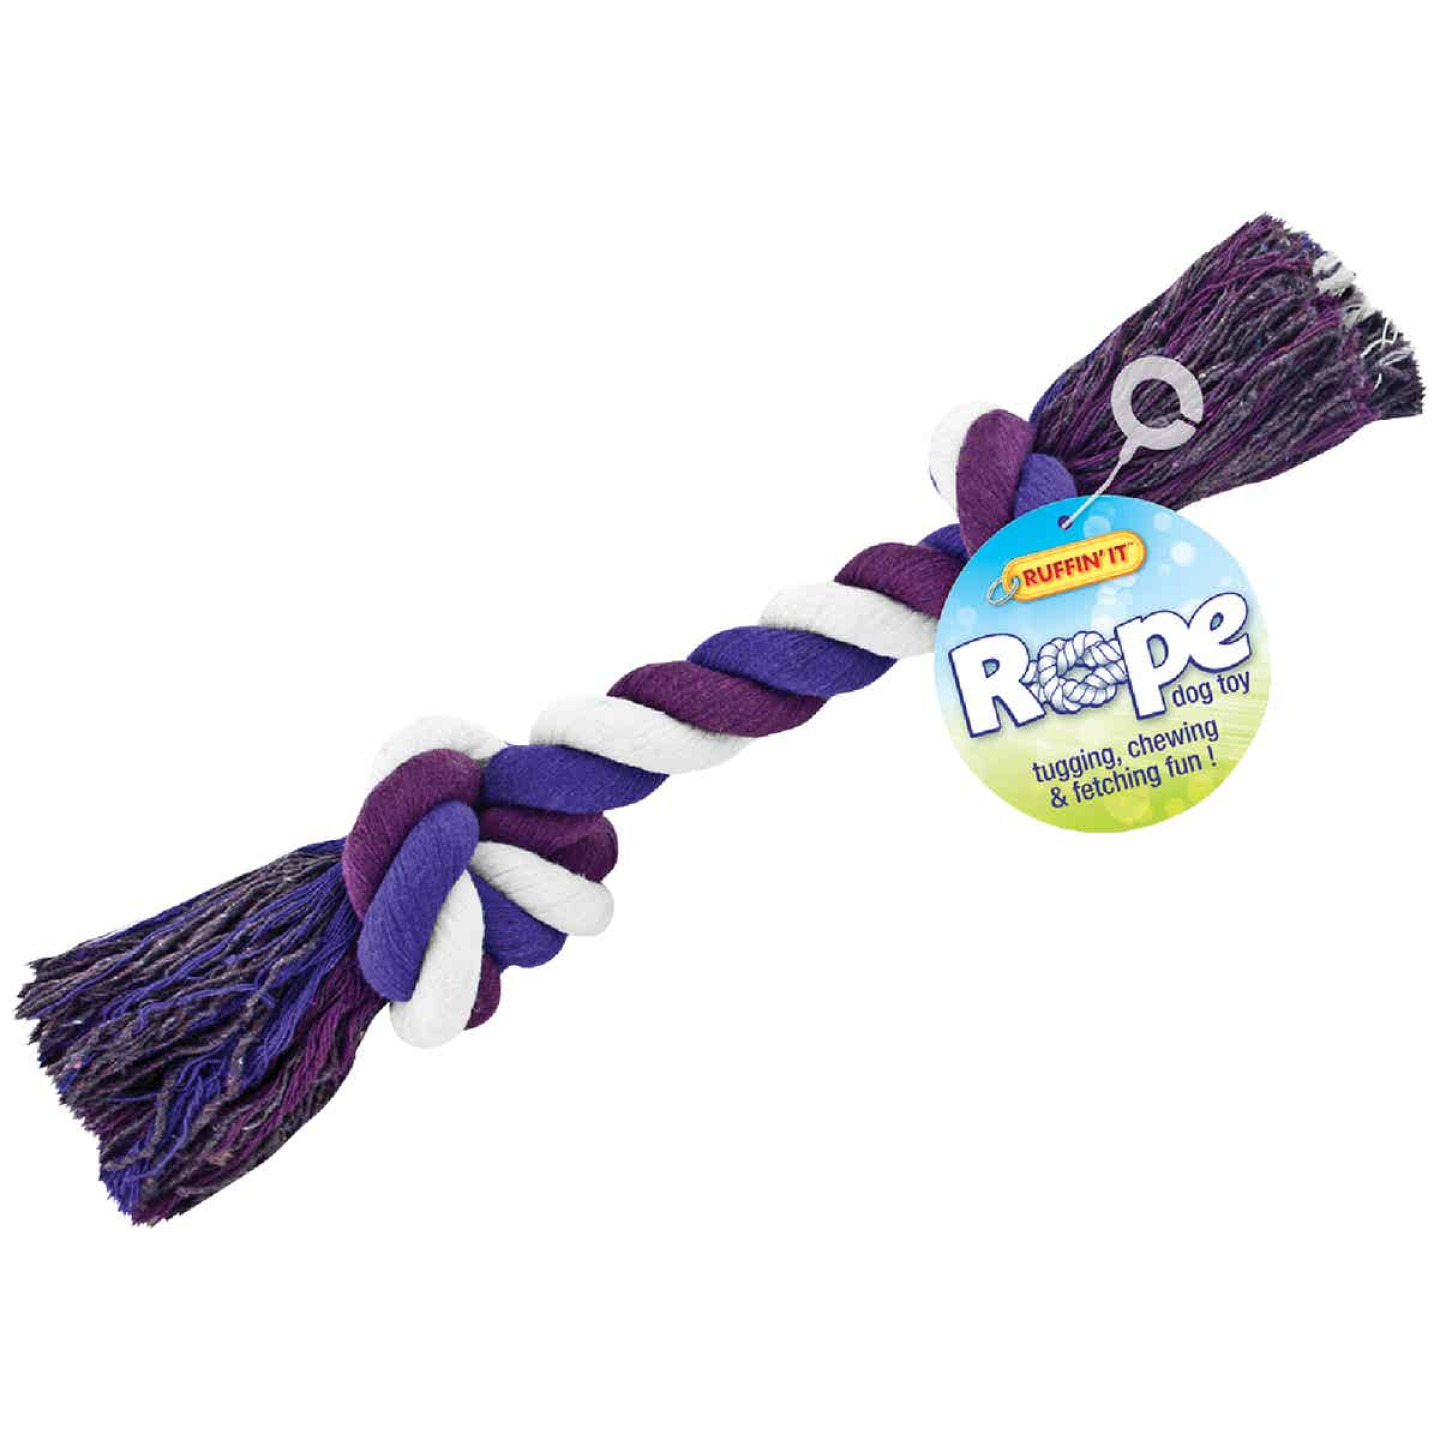 Westminster Pet Ruffin' it Large Multi-Colored Rope Tug Dog Toy Image 1